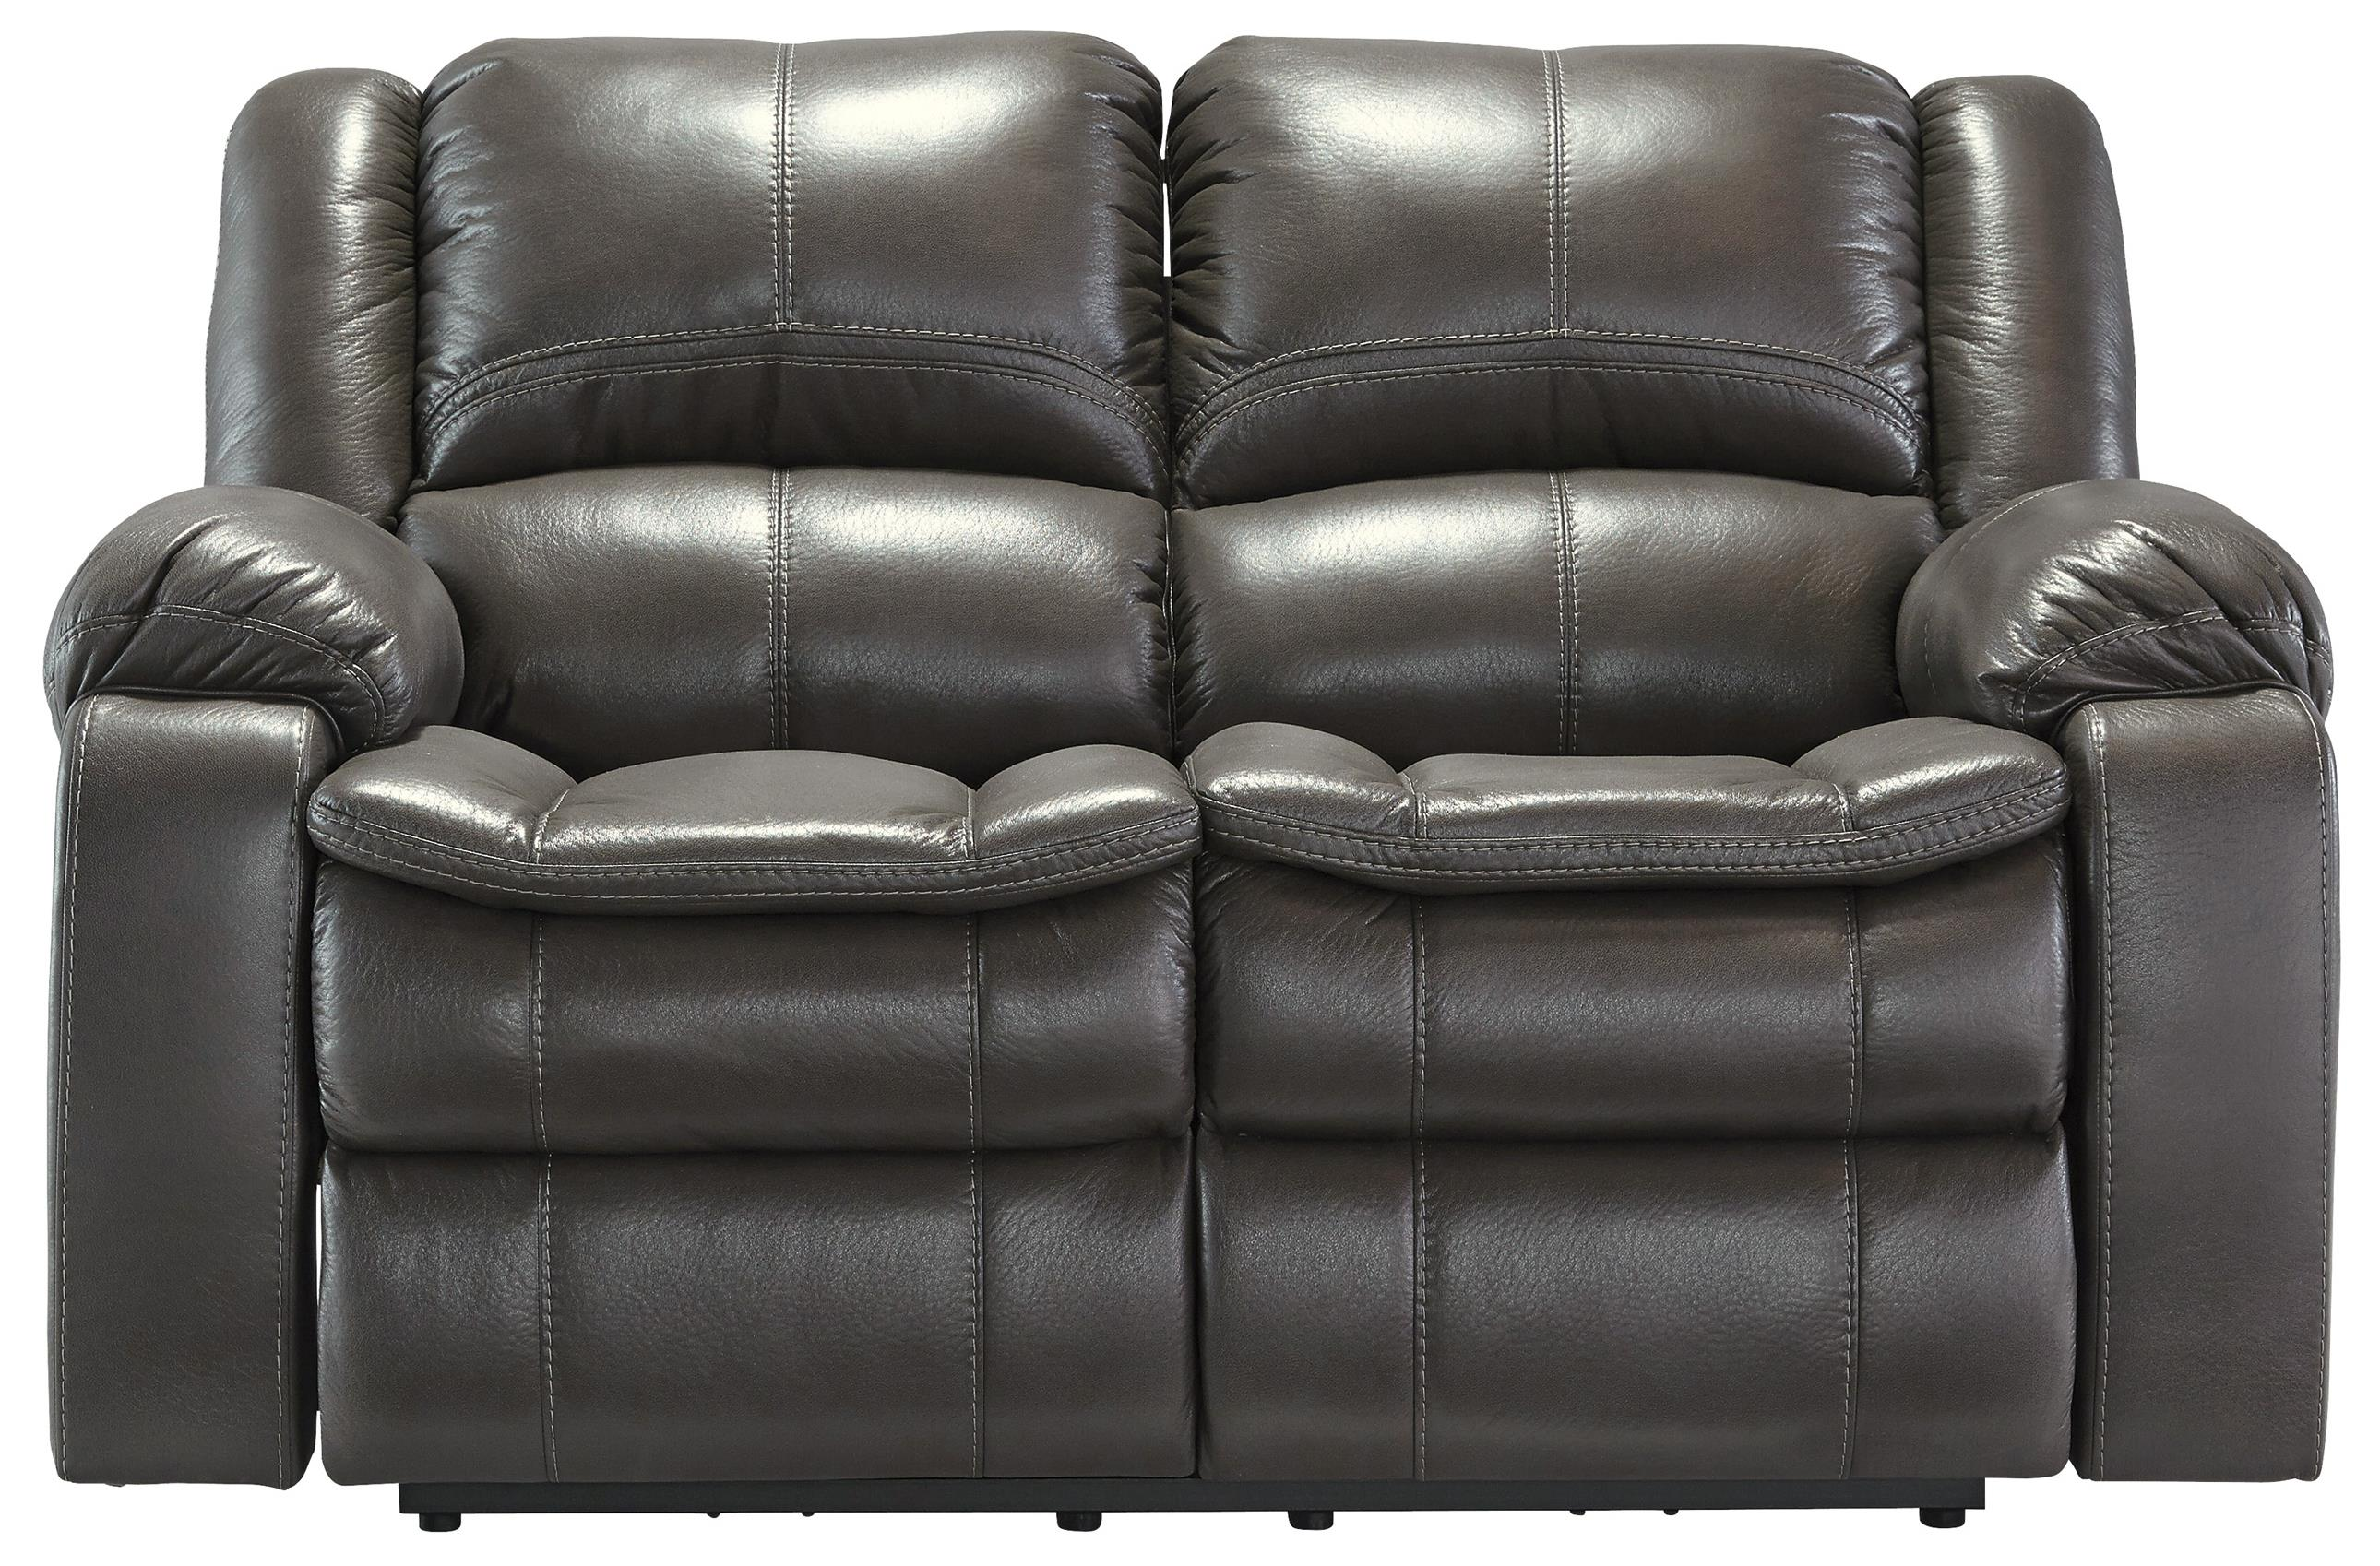 Signature Design by Ashley Long Knight Reclining Power Loveseat - Item Number: 8890674